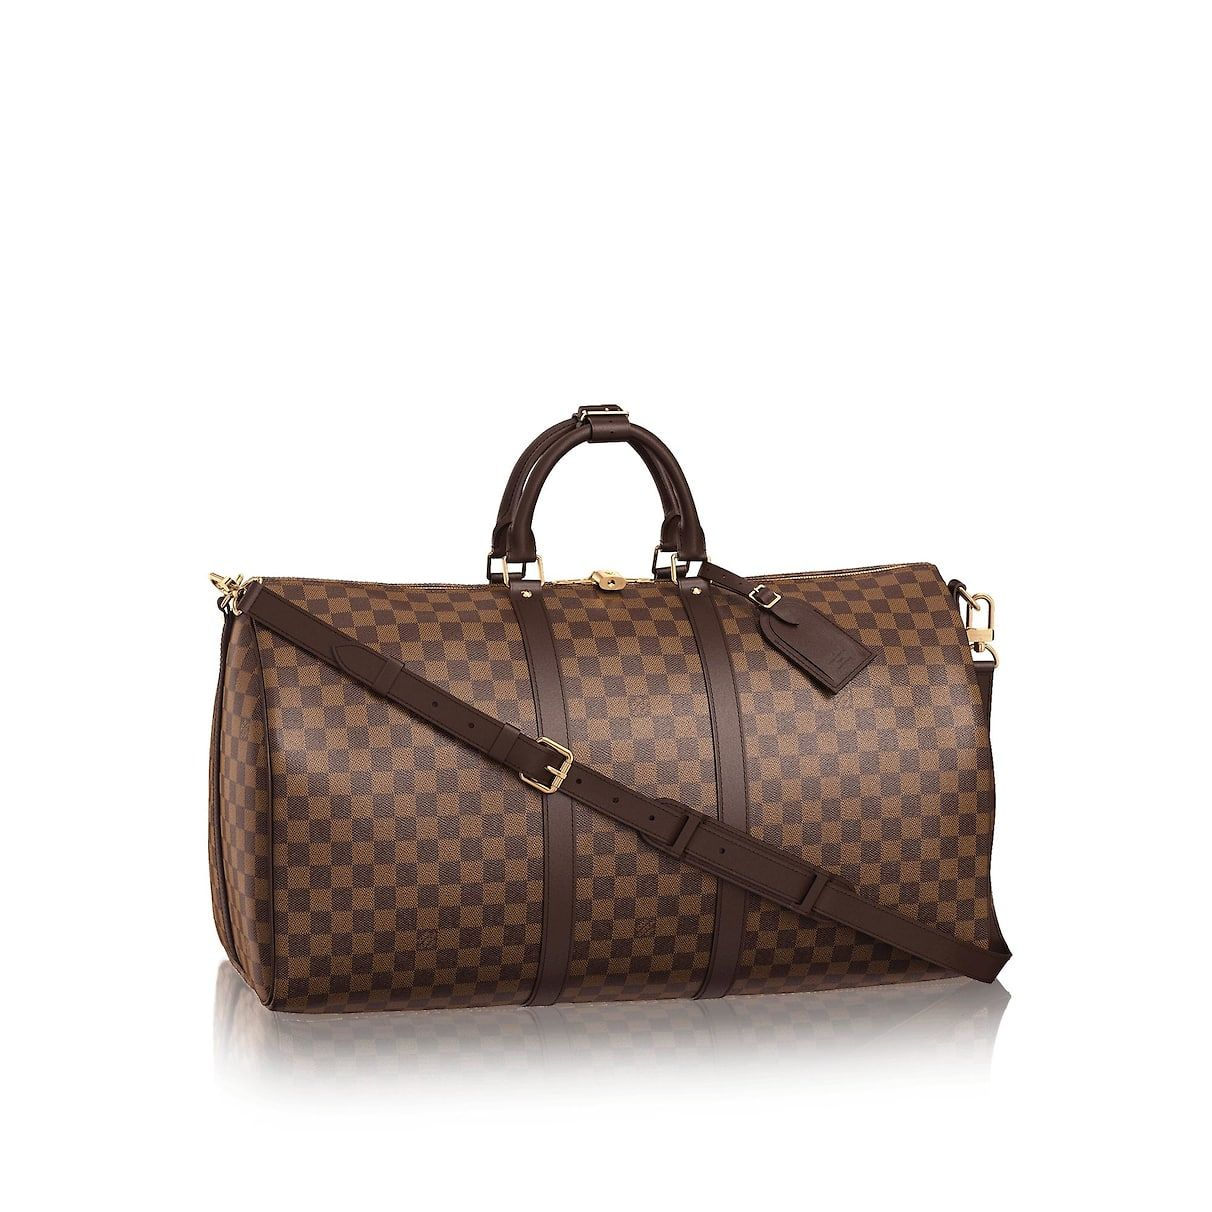 a7923e0d4a3d Damier Ebene PERSONALIZATION HOTSTAMPING Keepall Bandoulière 55 ...